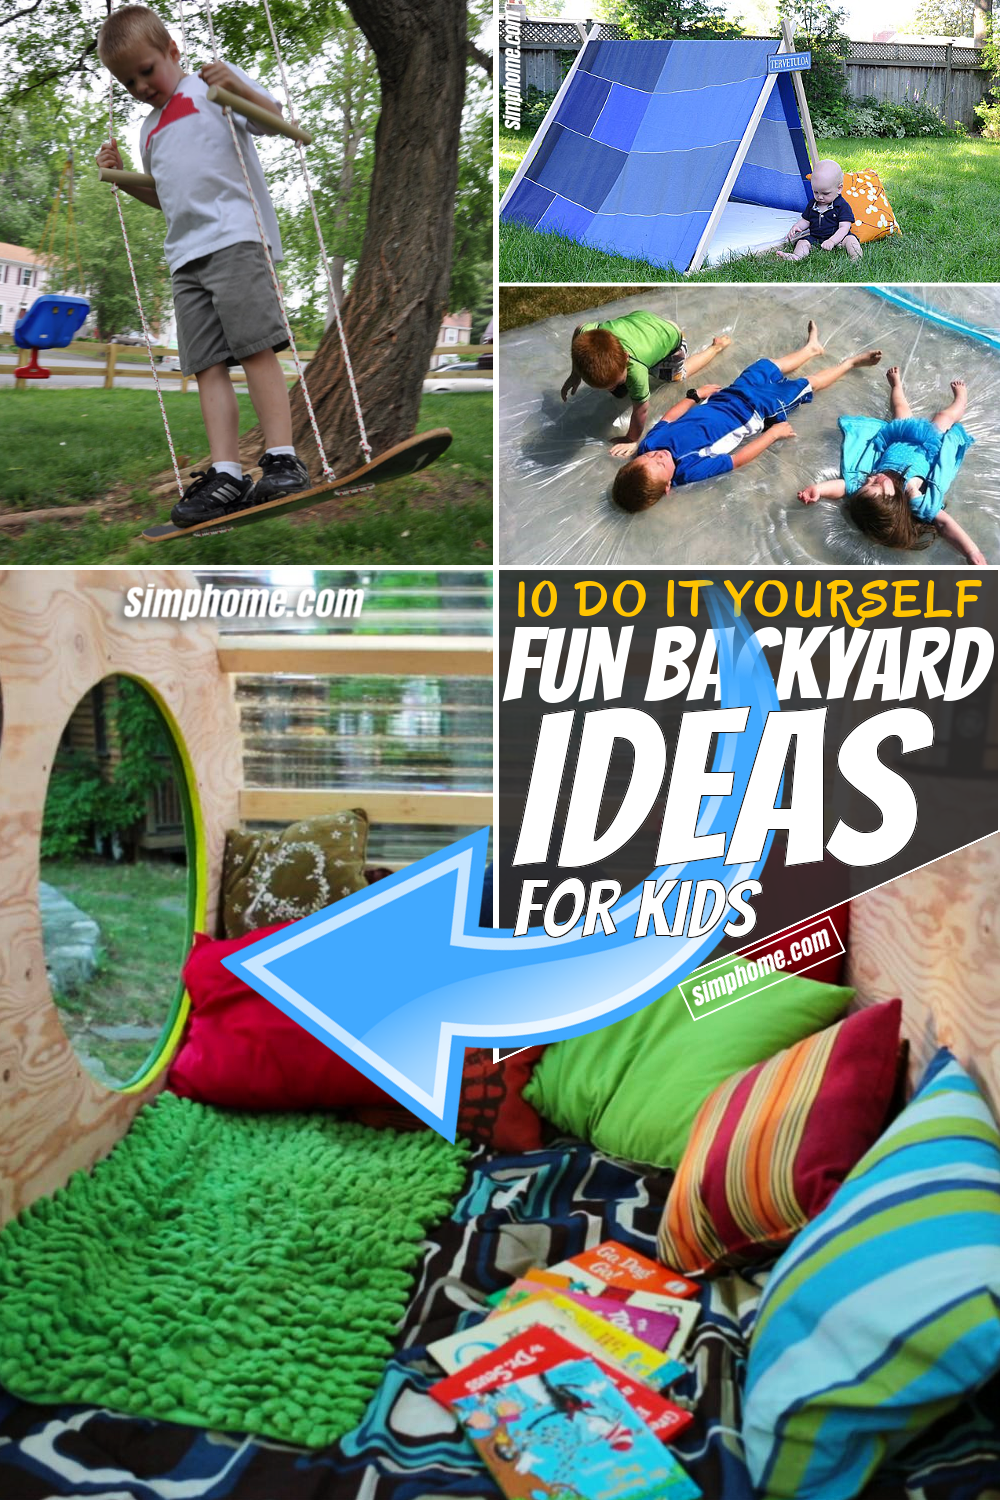 SIMPHOME.COM 10 Clever Tricks of How to Build Fun Backyard Ideas for Kids Featured Pinterest Image